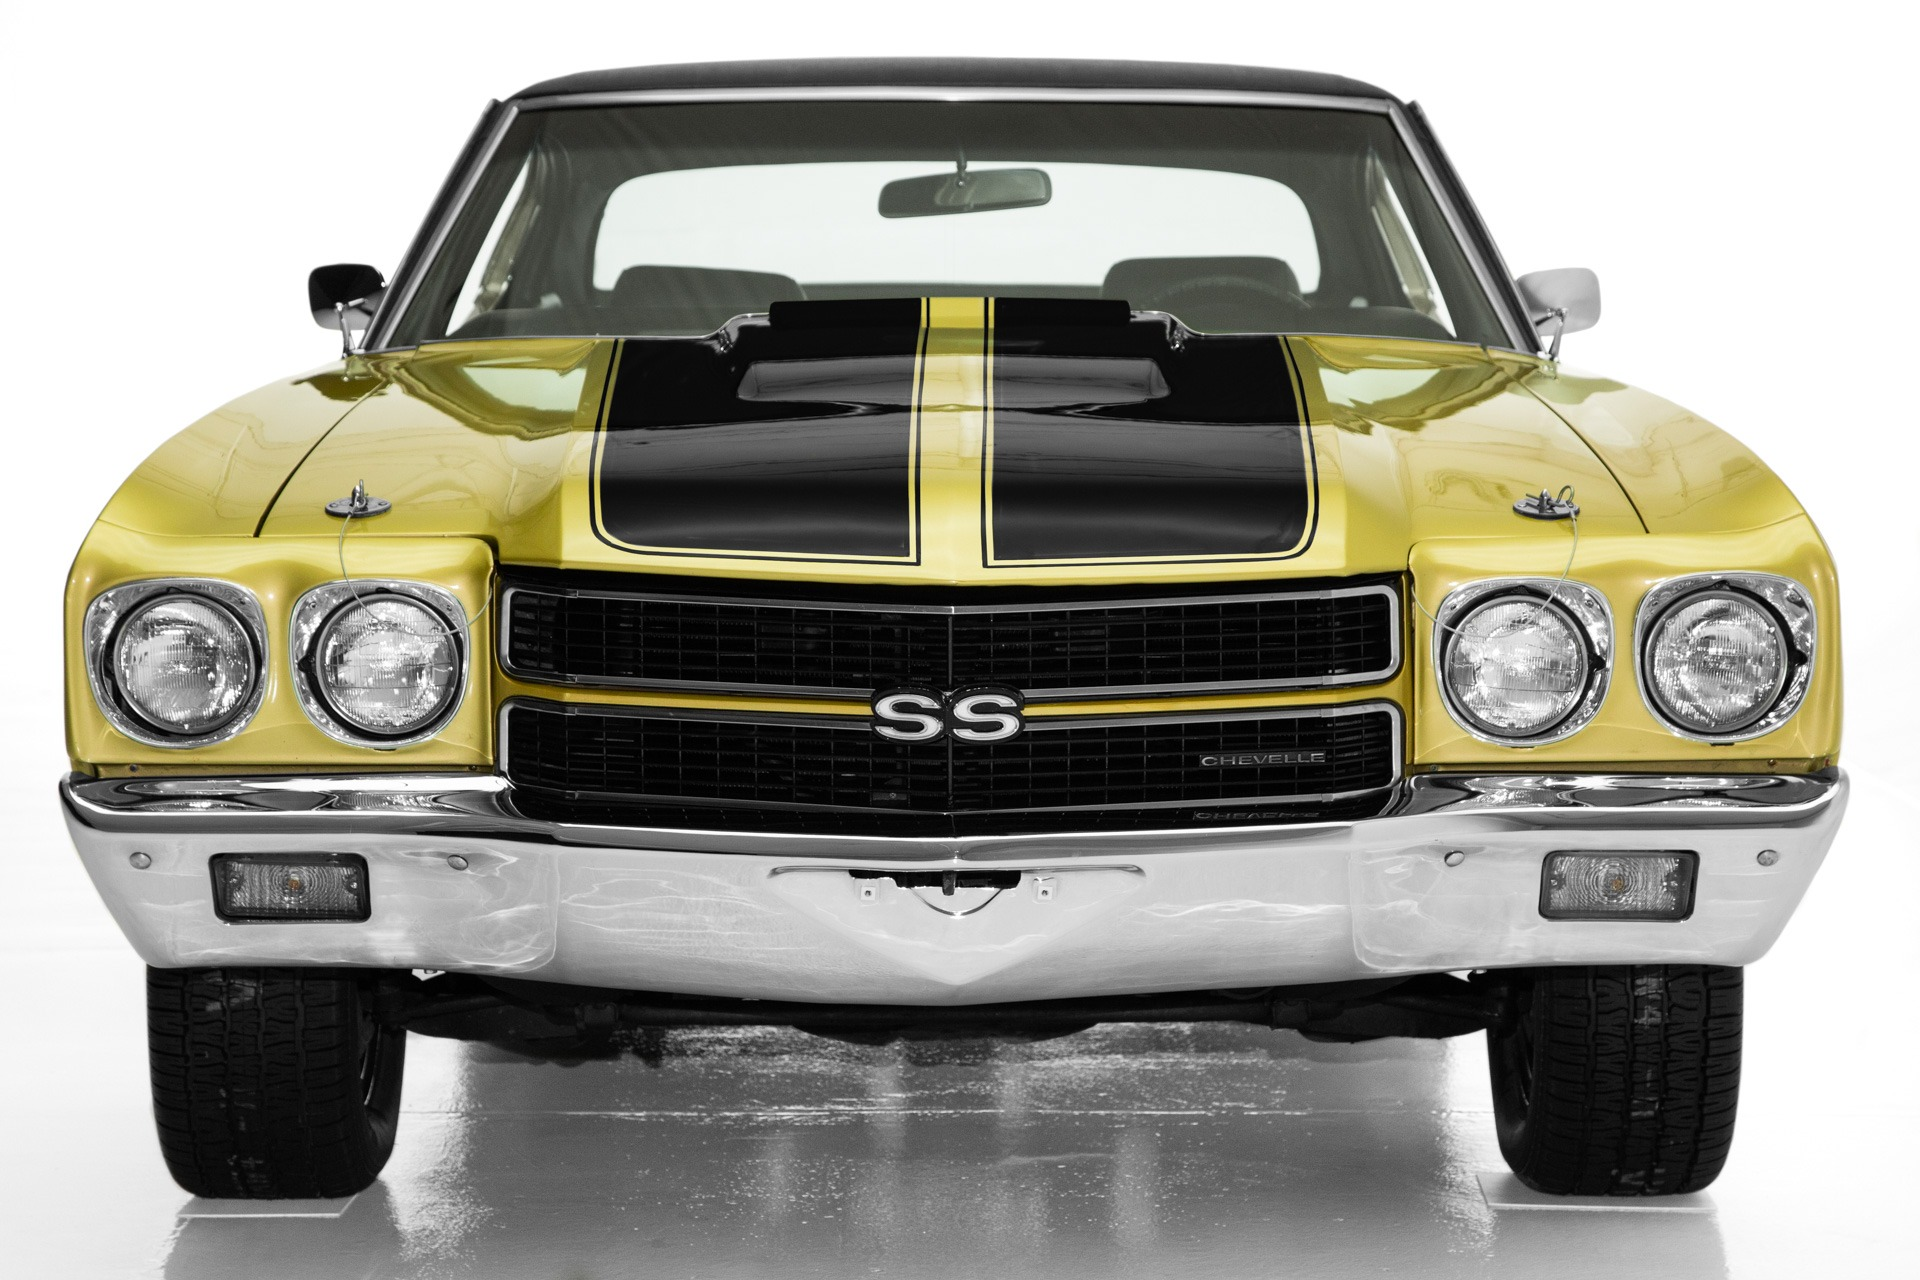 For Sale Used 1970 Chevrolet Chevelle Real SS 396 Build Sheet | American Dream Machines Des Moines IA 50309